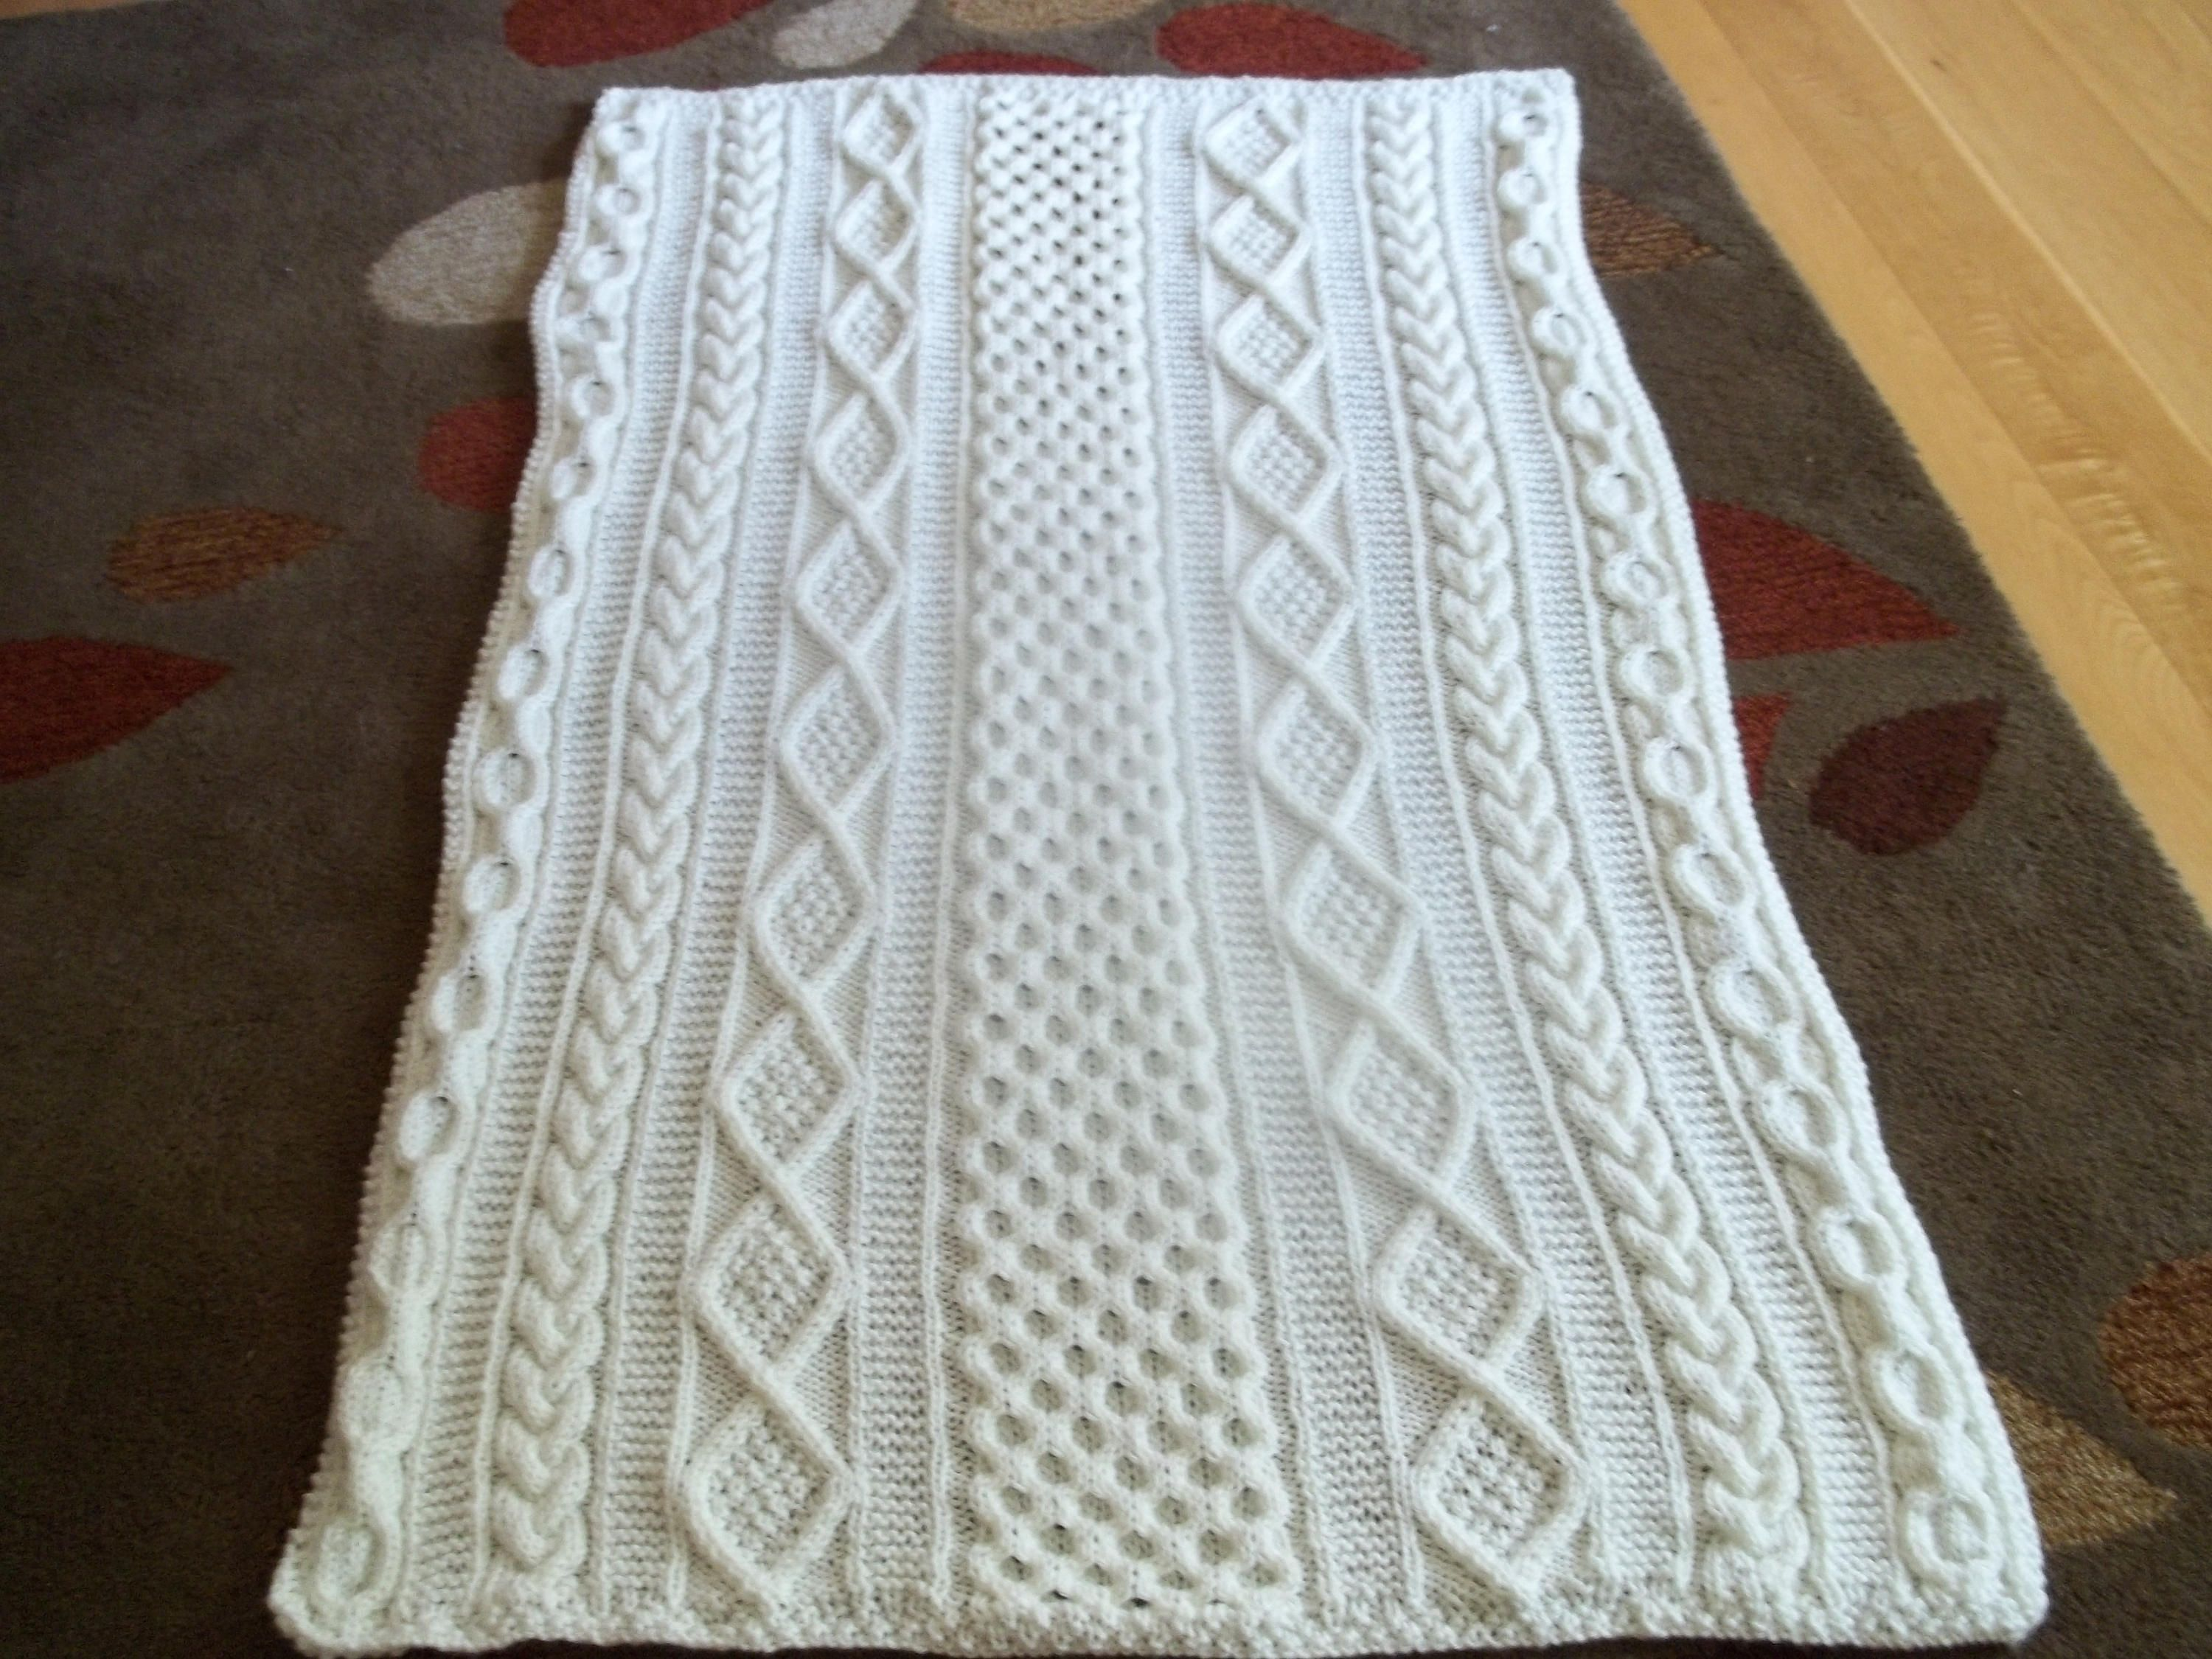 Knit Afghan, Kelly Cable in Soft White, Blanket, Lap Blanket ...